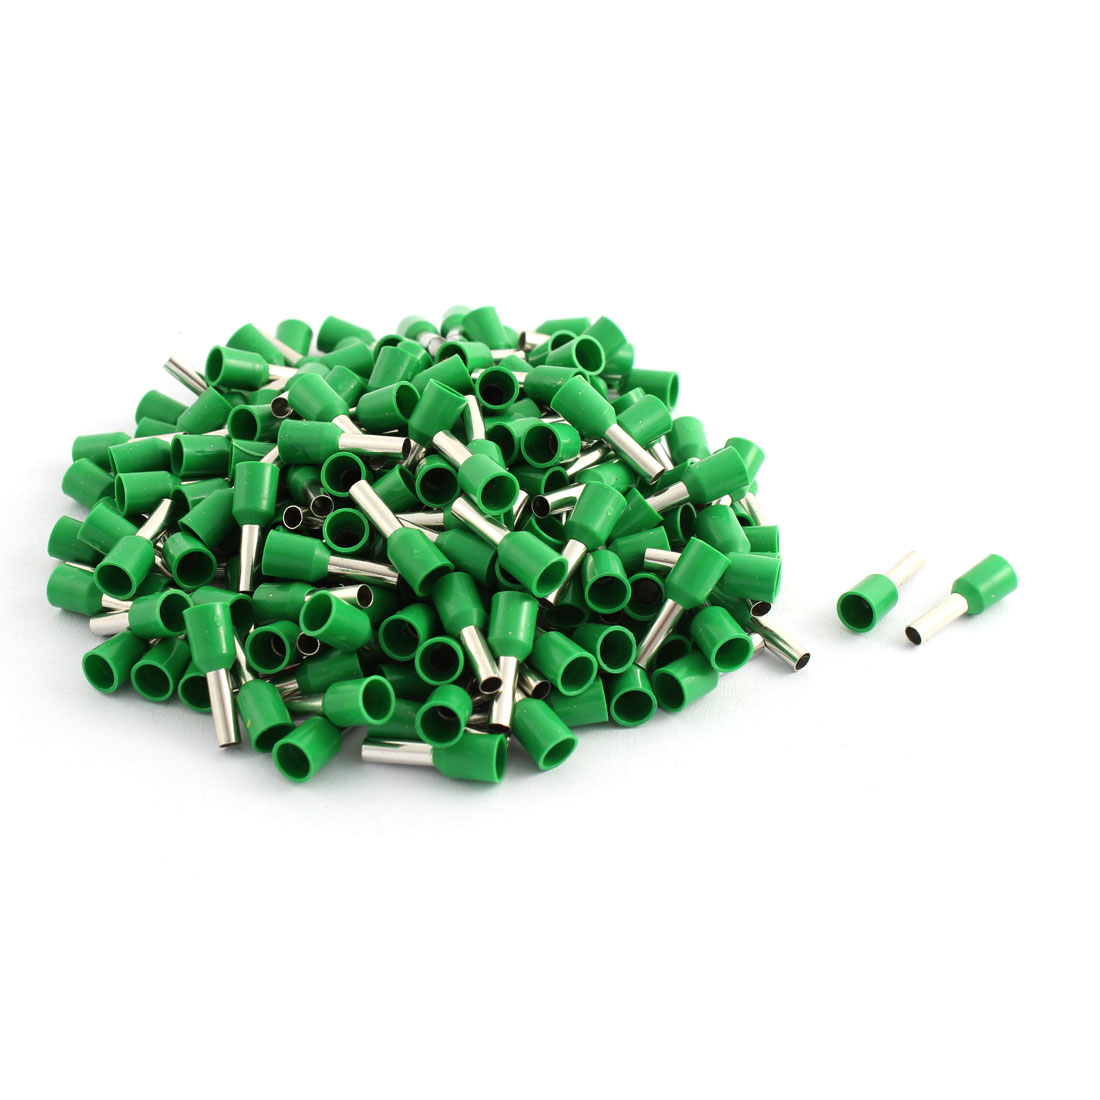 200 Pcs 2.5mm2 Crimp Wire End Terminal Insulated Bootlace Ferrule Connector Green